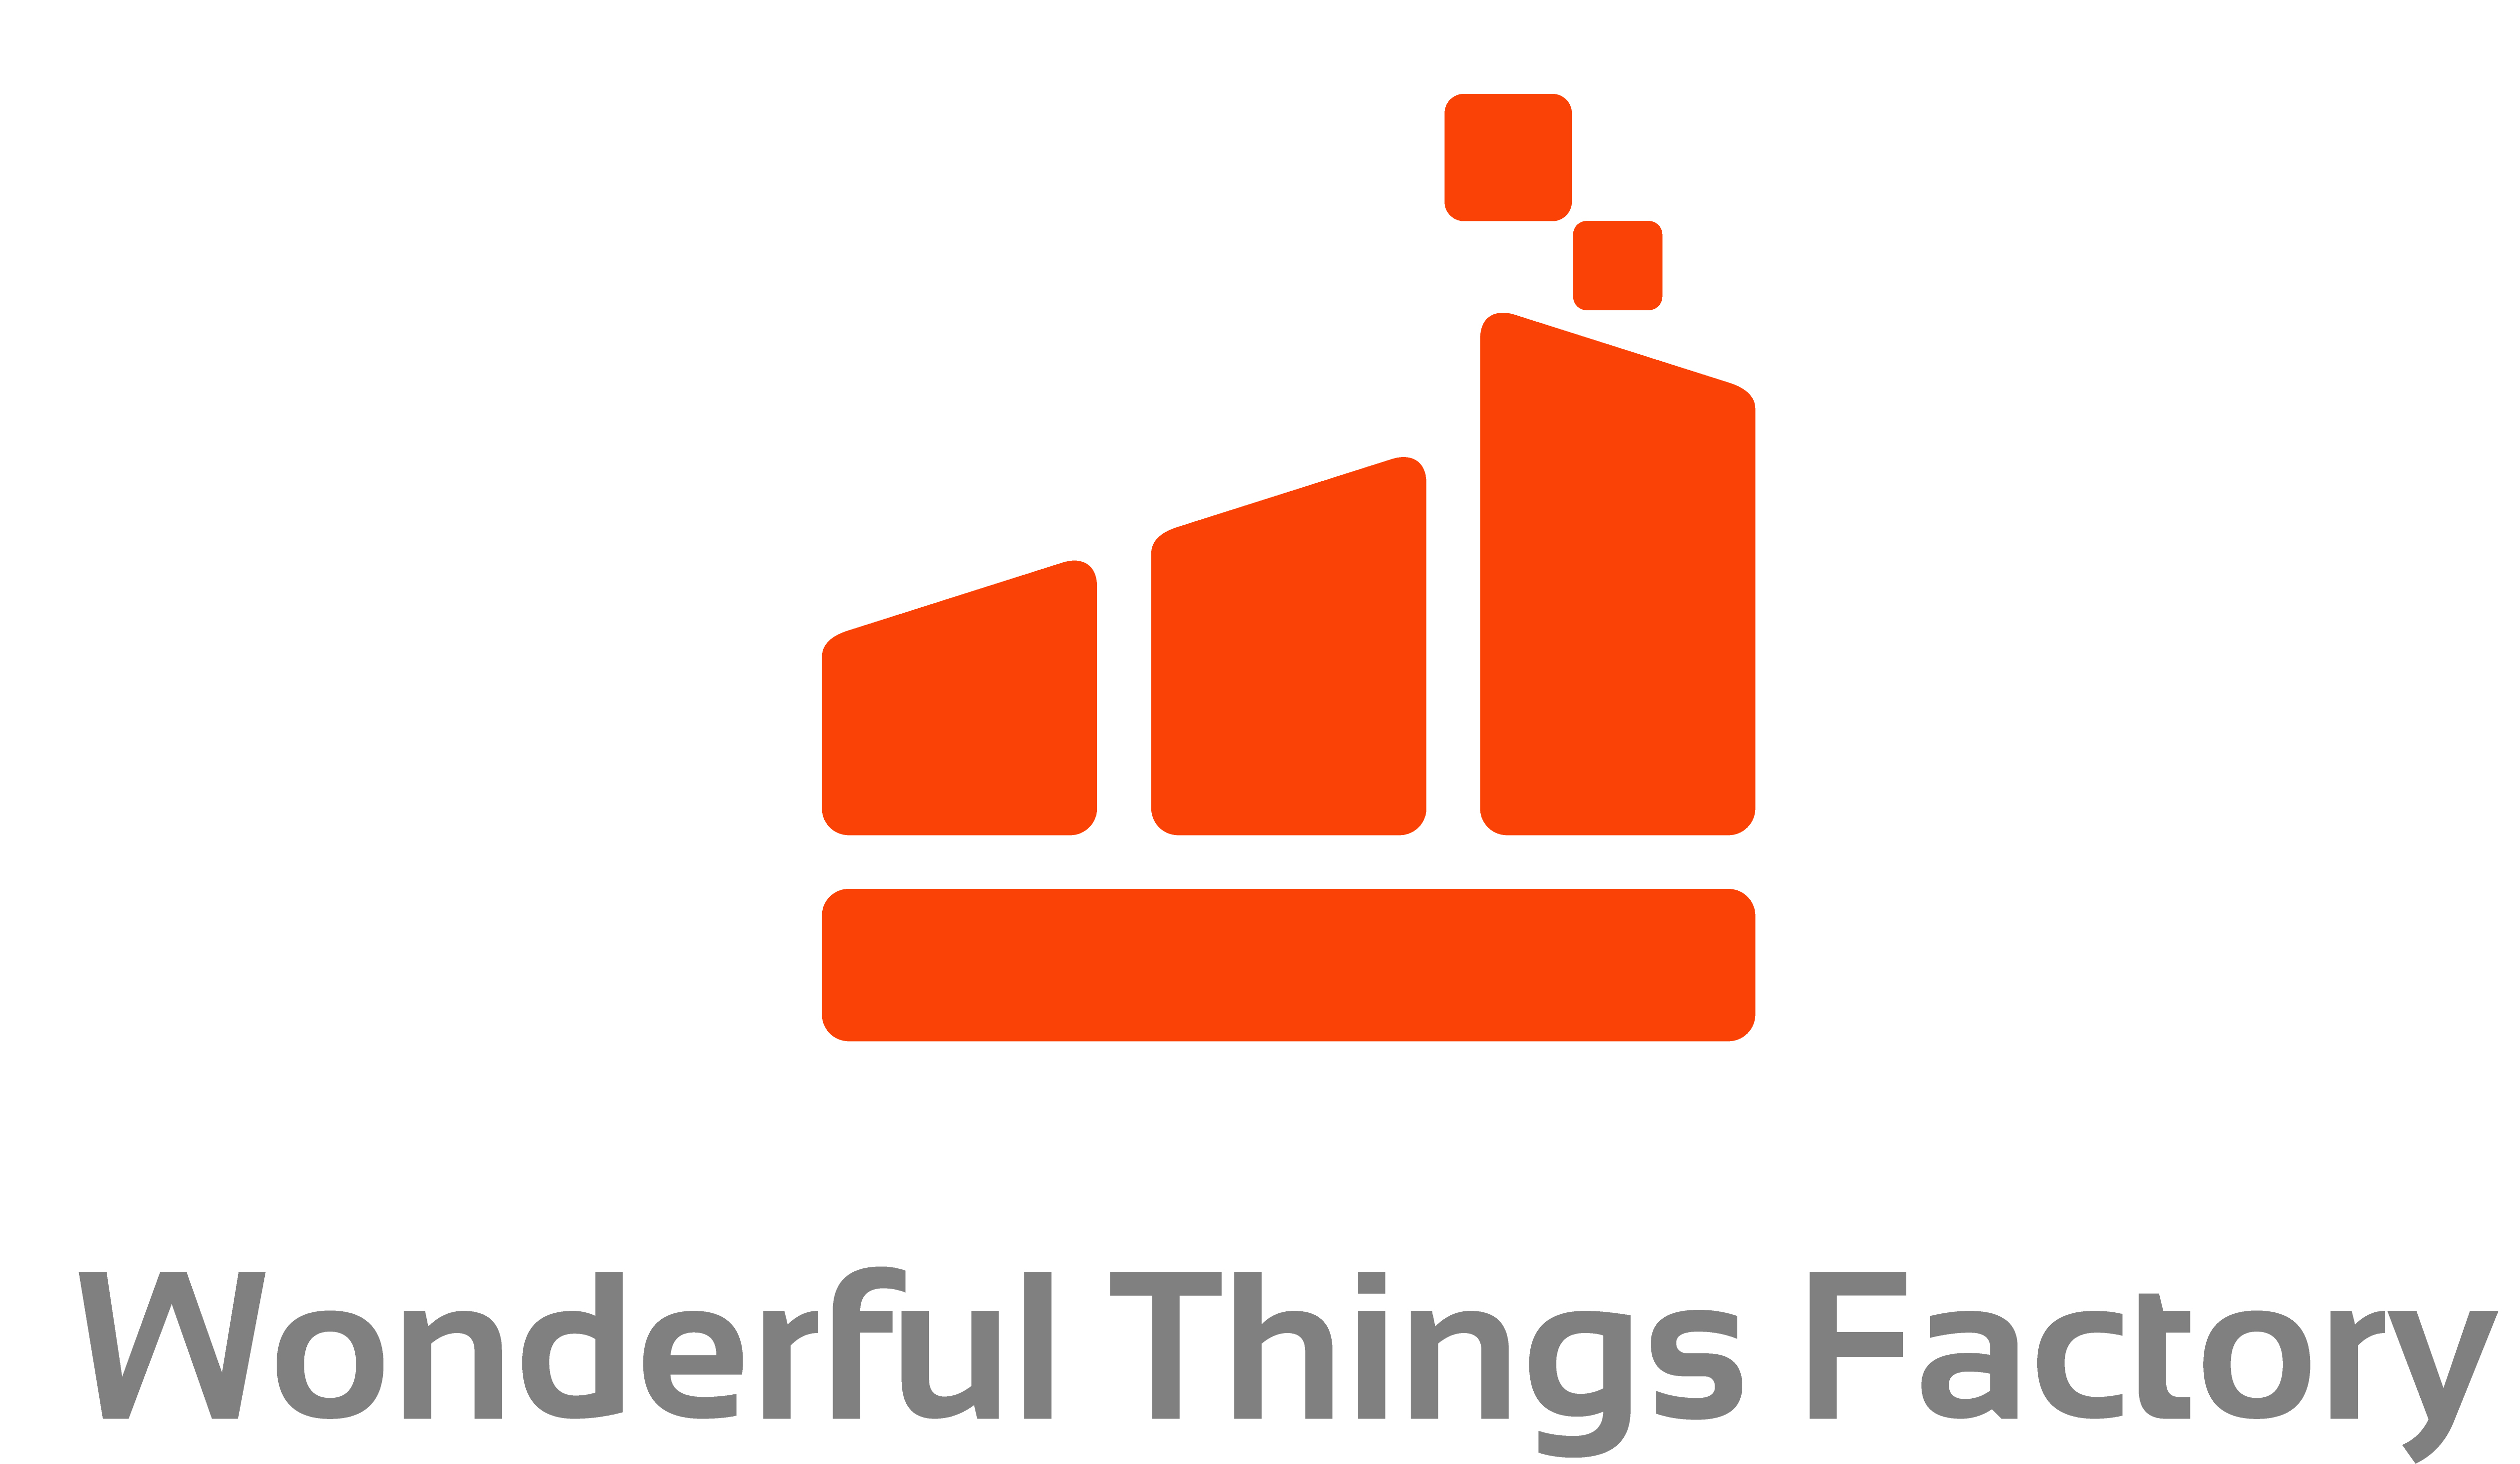 The Wonderful Things Factory